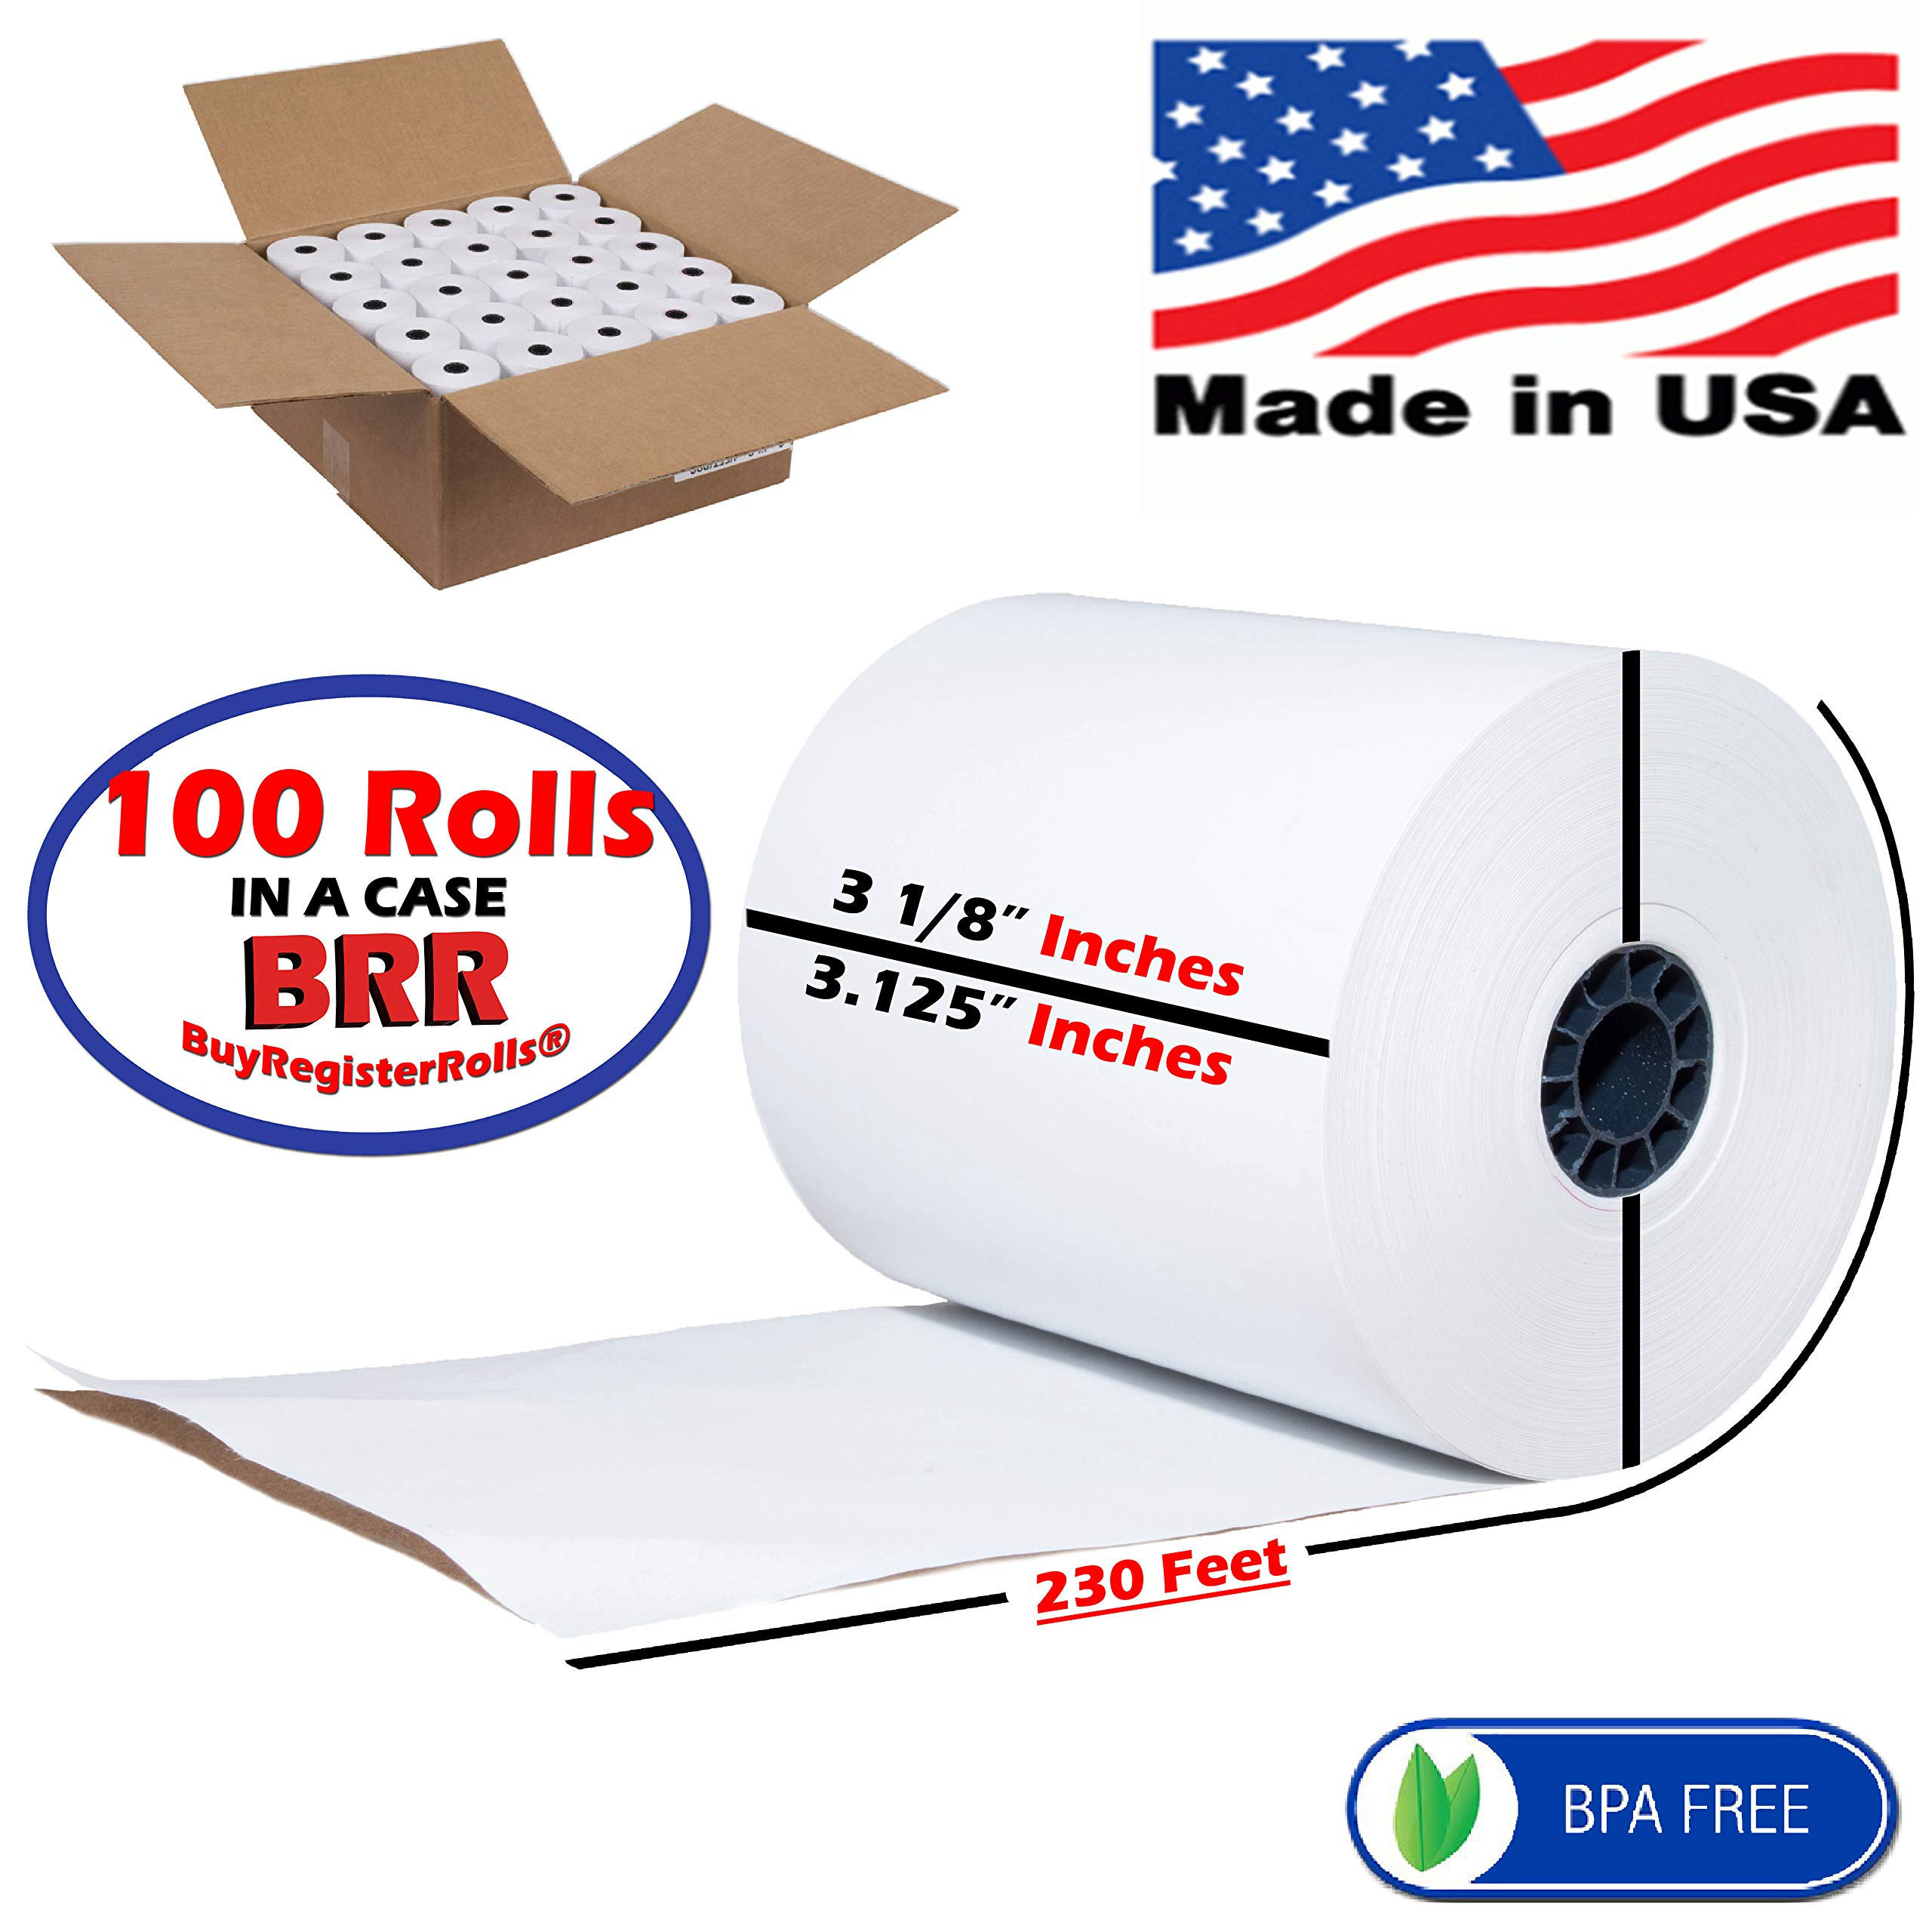 Thermal Paper roll 3 1 8' x 230 POS-X XR510 Thermal Receipt Printer BPA Free Made in USA from BuyRegisterRolls (3 1/8 X 230 Thermal Paper 100 Rolls) by BuyRegisterRolls